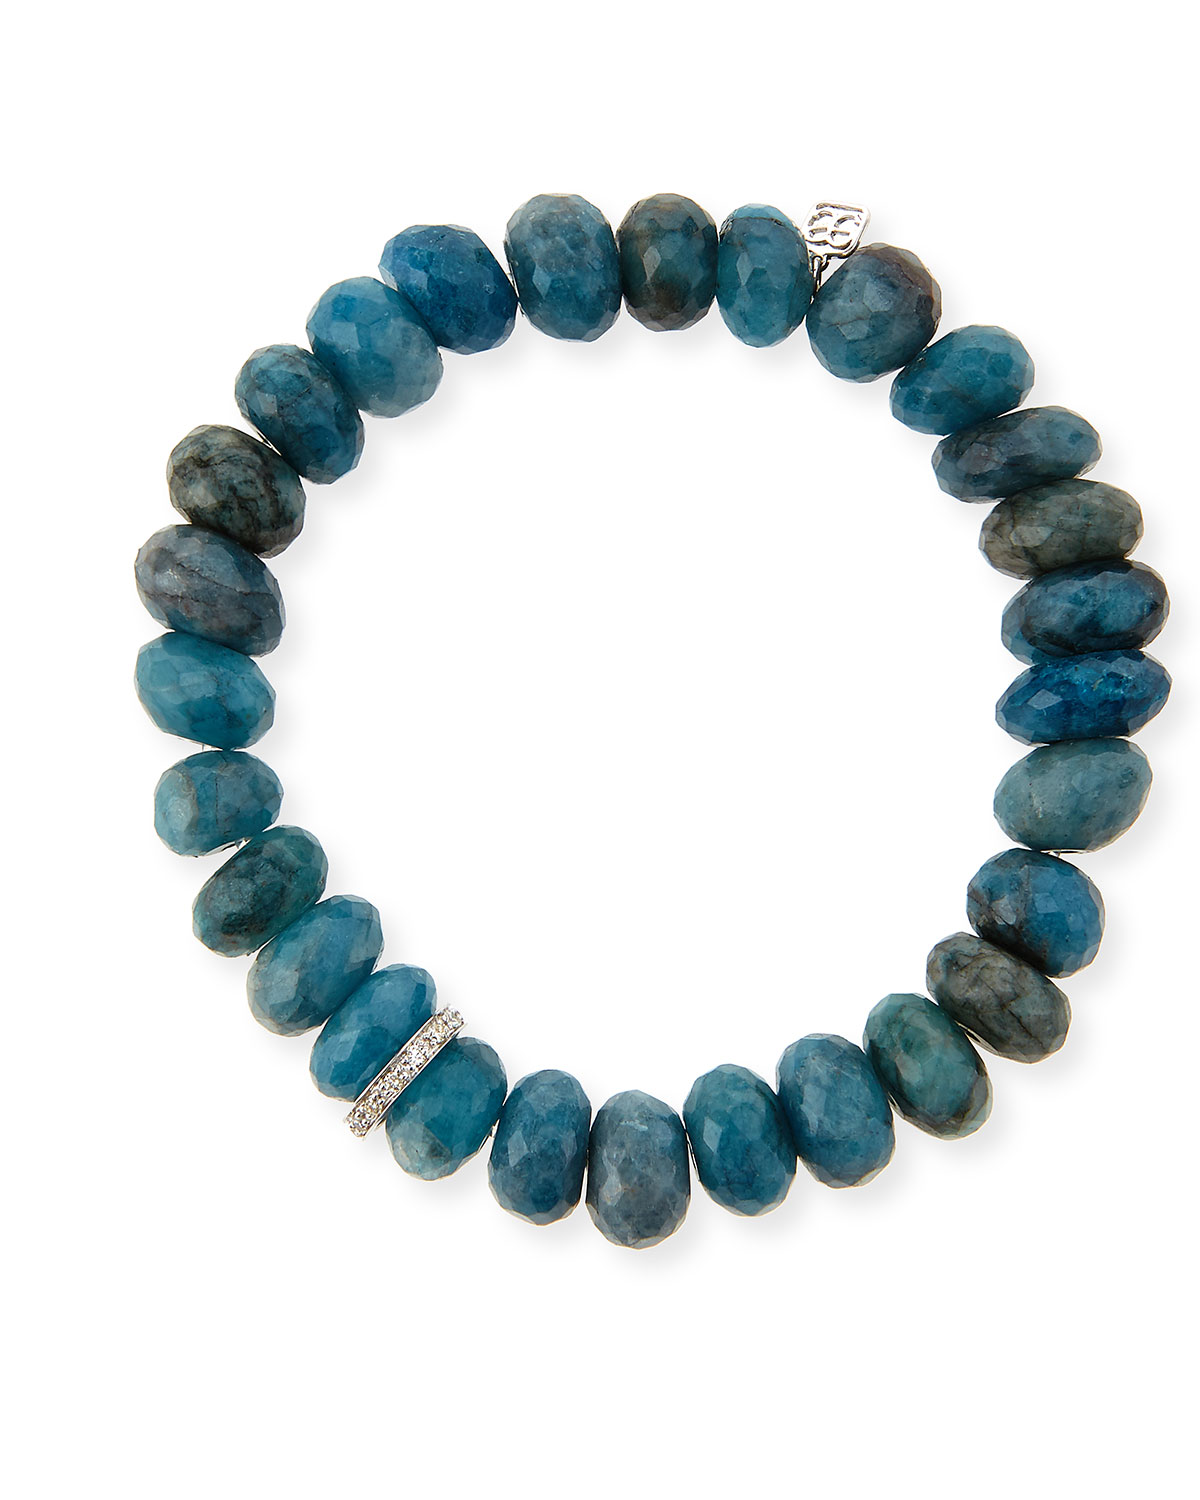 10mm Faceted Blue Chrysocolla Beaded Bracelet with 14k White Gold Diamond Disc, TURQUOISE - Sydney Evan